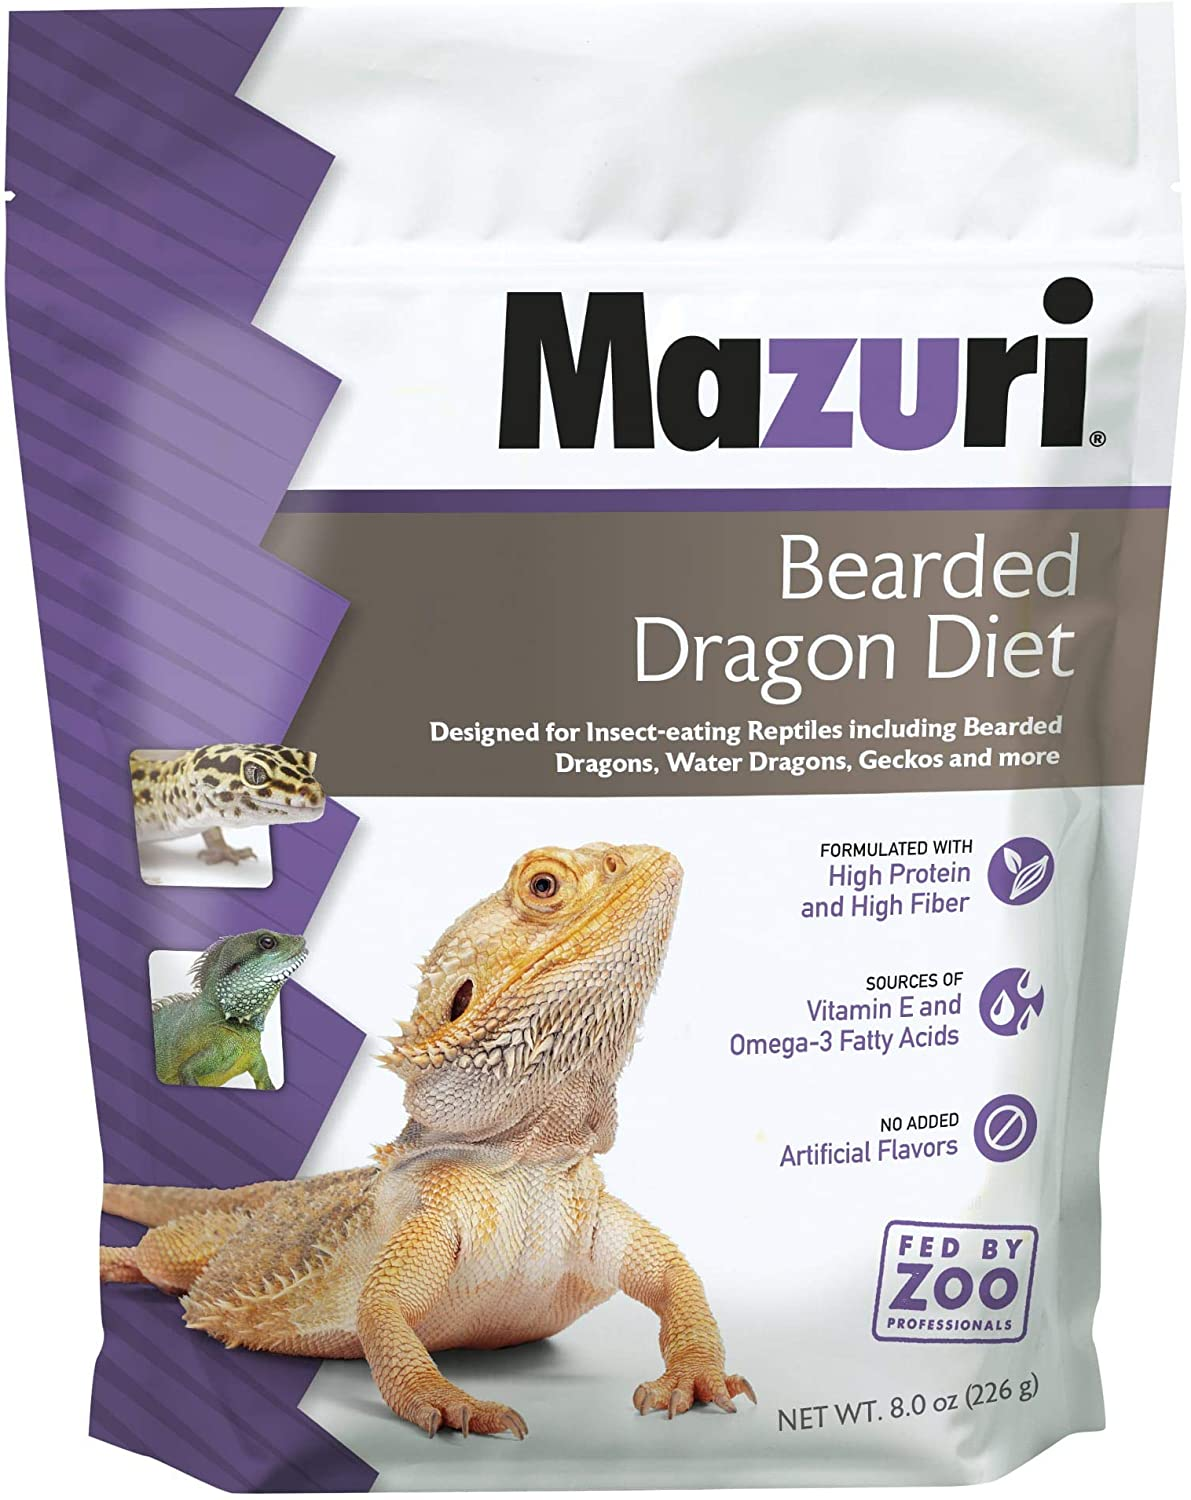 Mazuri | Bearded Dragon Food - Insect Portion of a Complete Diet | 8 Ounce (8 oz) Bag